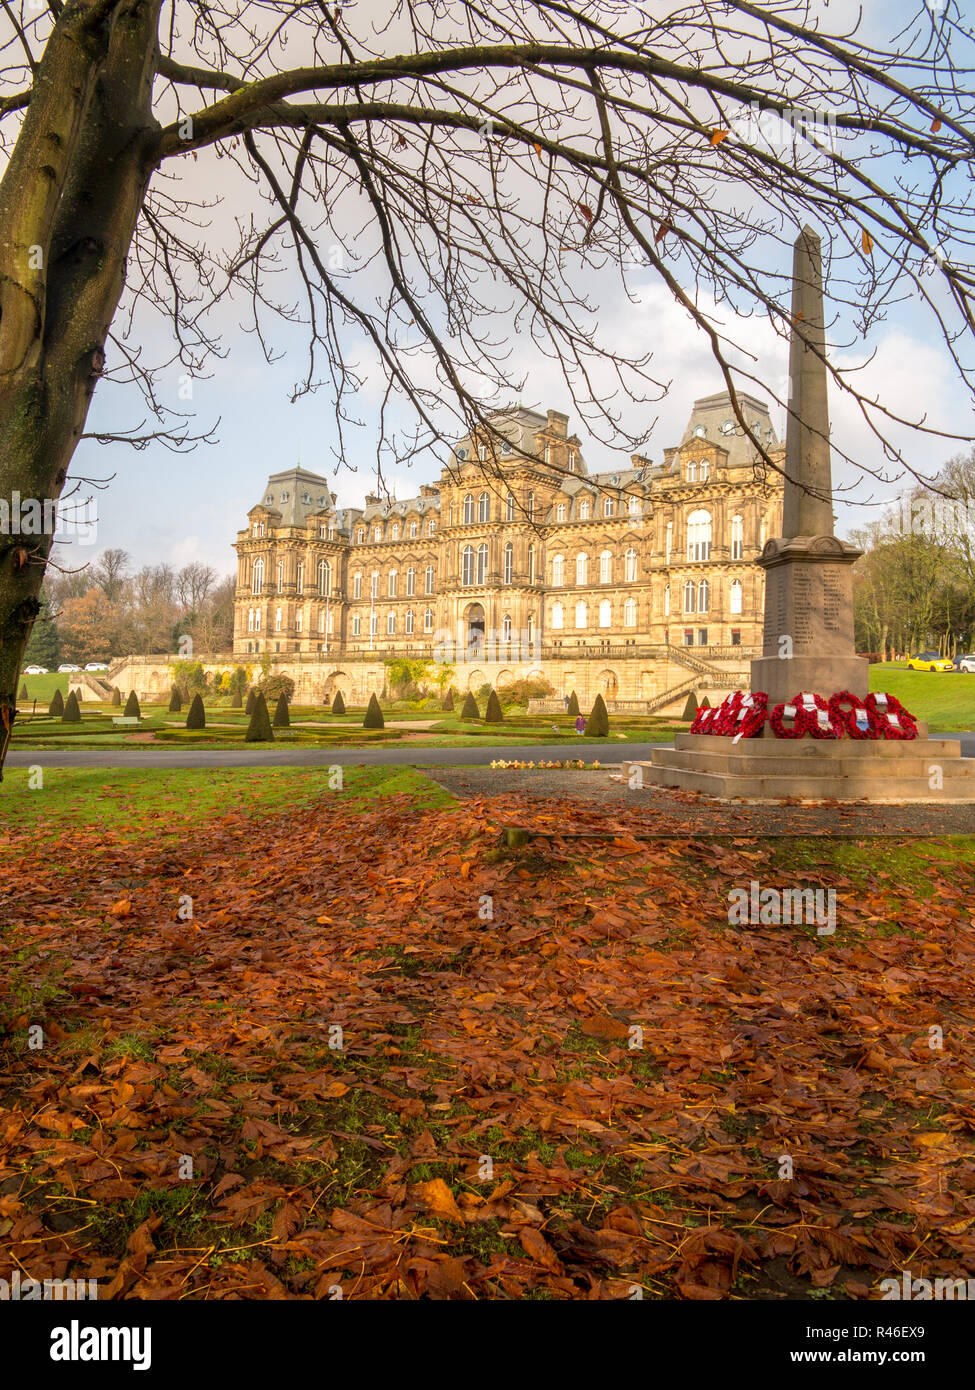 The Bowes Museum in the Teesdale market town of Barnard Castle County Durham founded by John and Josephine Bowes 1869 in the style of a French Chateau - Stock Image